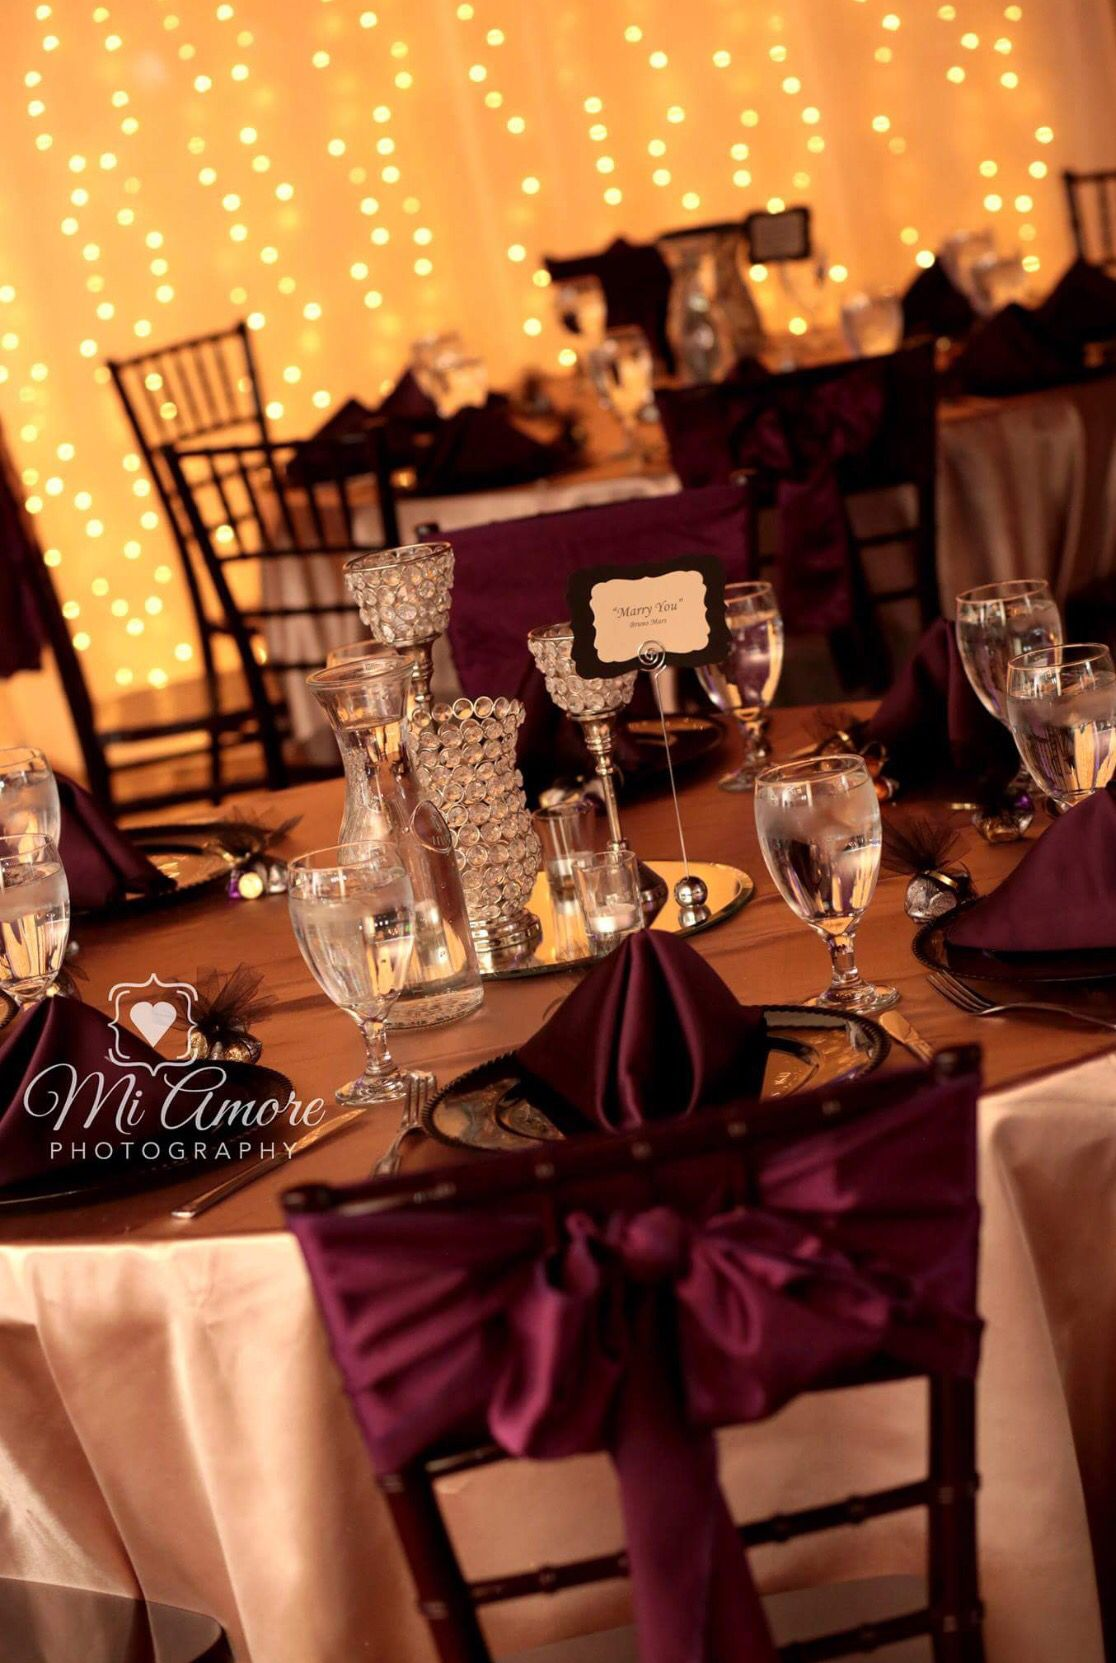 Burgundy Centerpieces For Quinceaneras : Burgundy sashes with bling centerpieces on gold linen